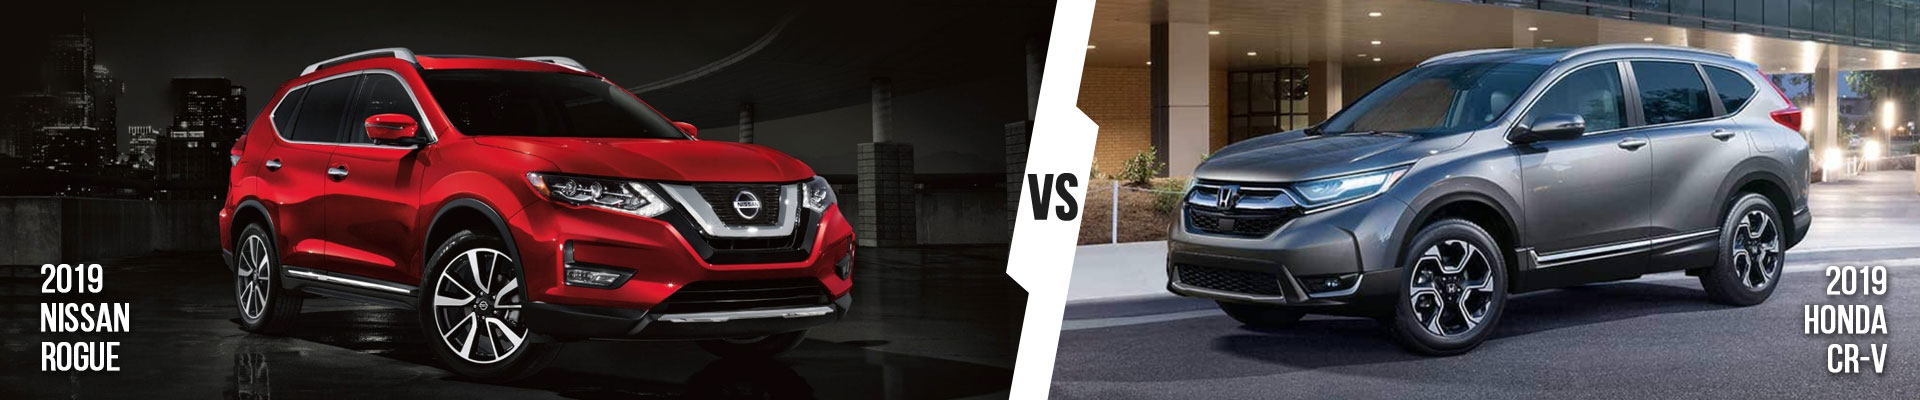 Examine The Nissan Rogue vs. Honda CR-V In Fort Myers, Florida